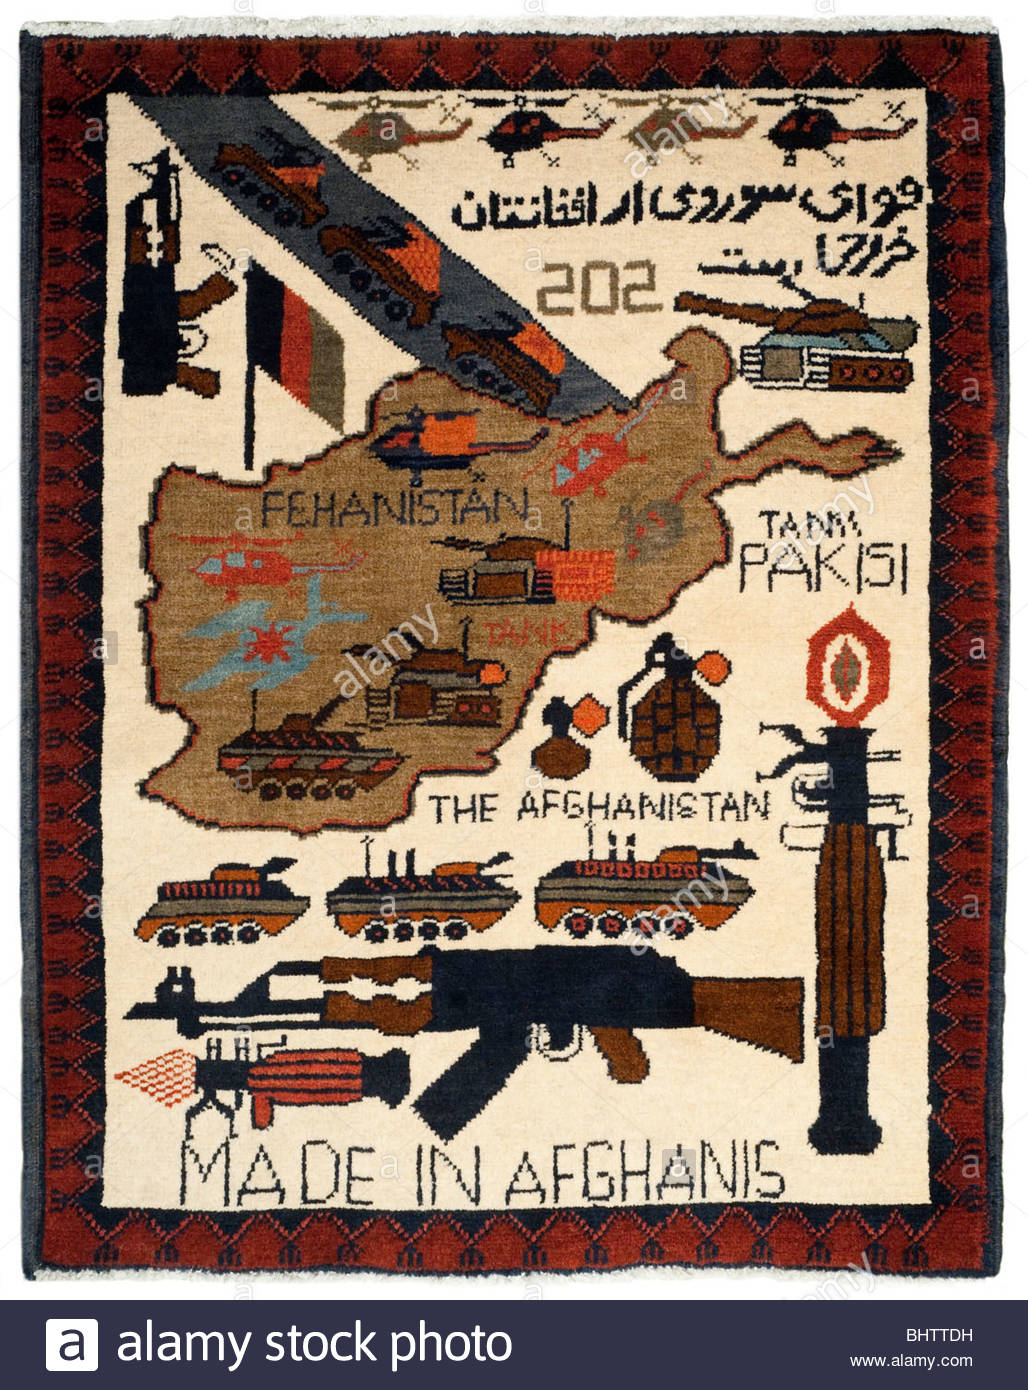 Hand Made Afghanistan War Souvenir Rug Carpet, this rugs are made by traditional Afghan Rug makers and sold to US - Stock Image